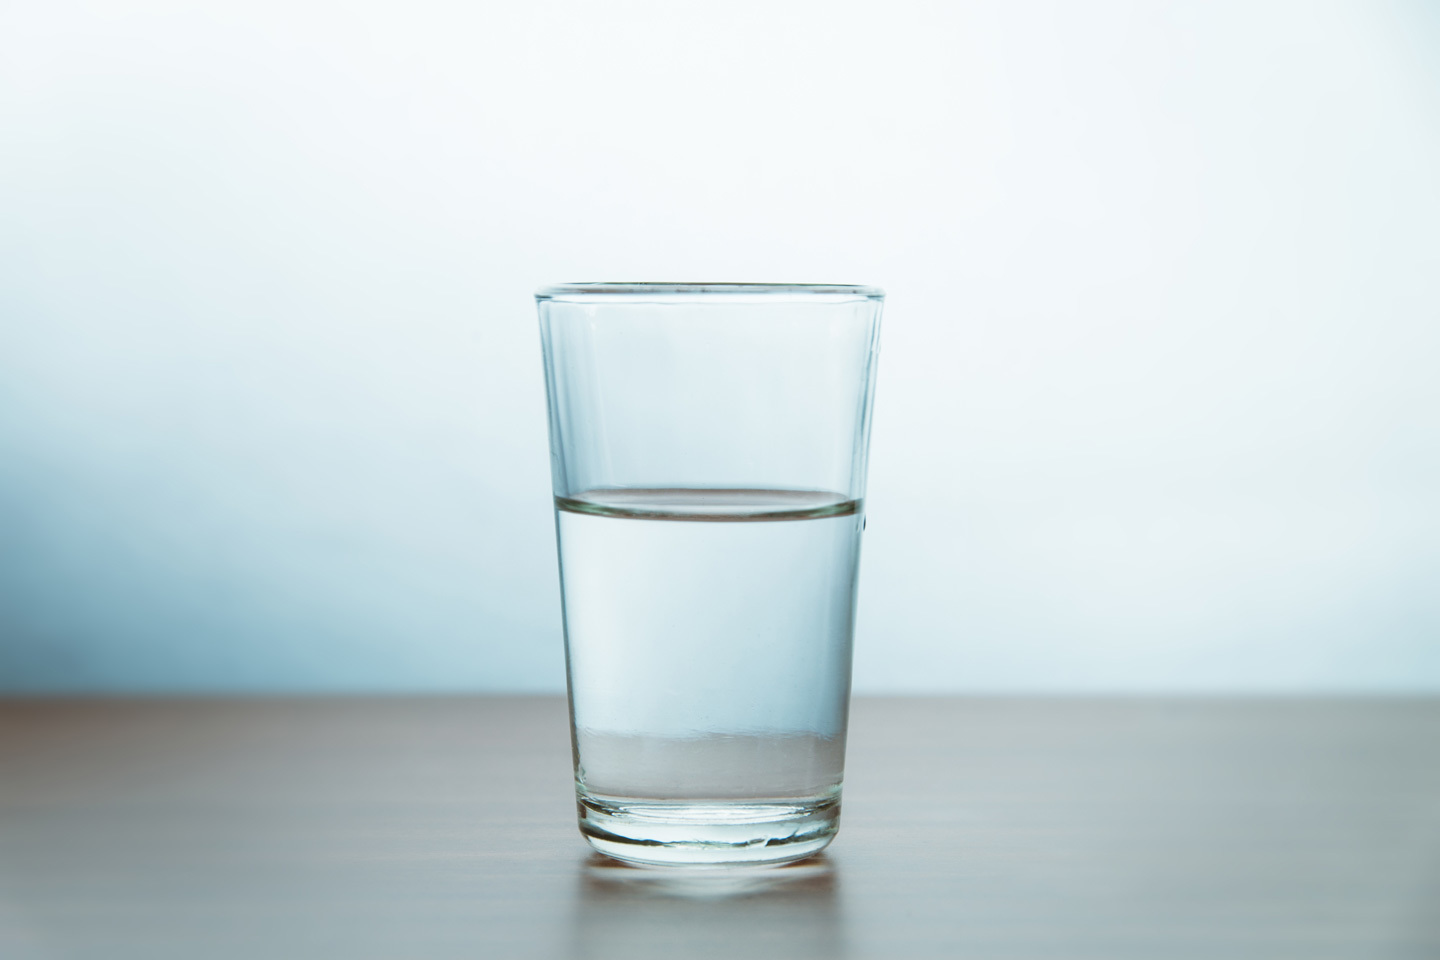 10 Dangerous Side Effects of Not Drinking Enough Water